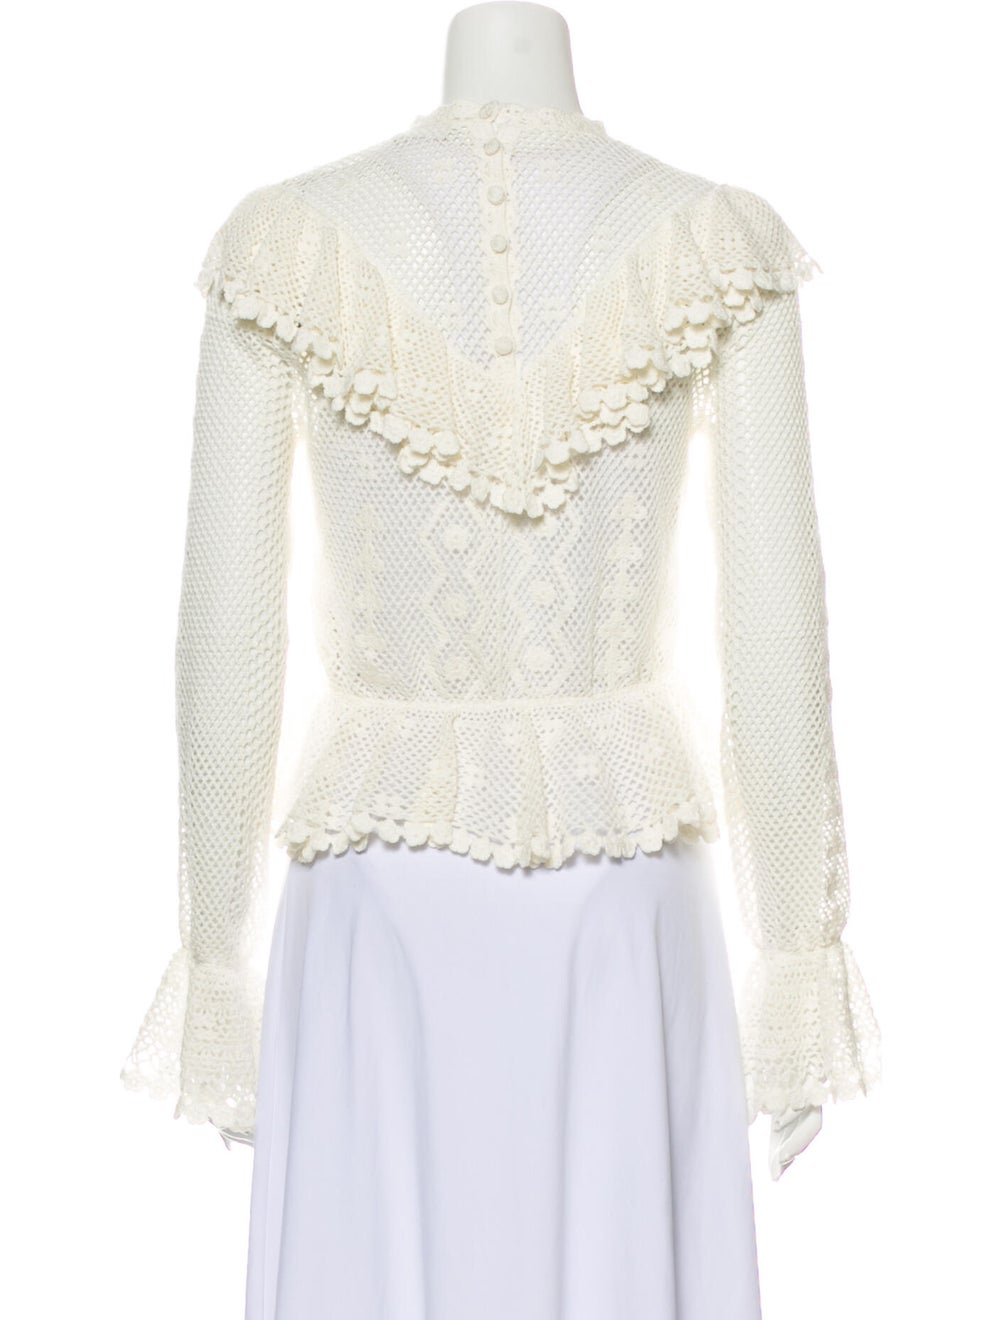 Zimmermann Lace Pattern Mock Neck Blouse White - image 3